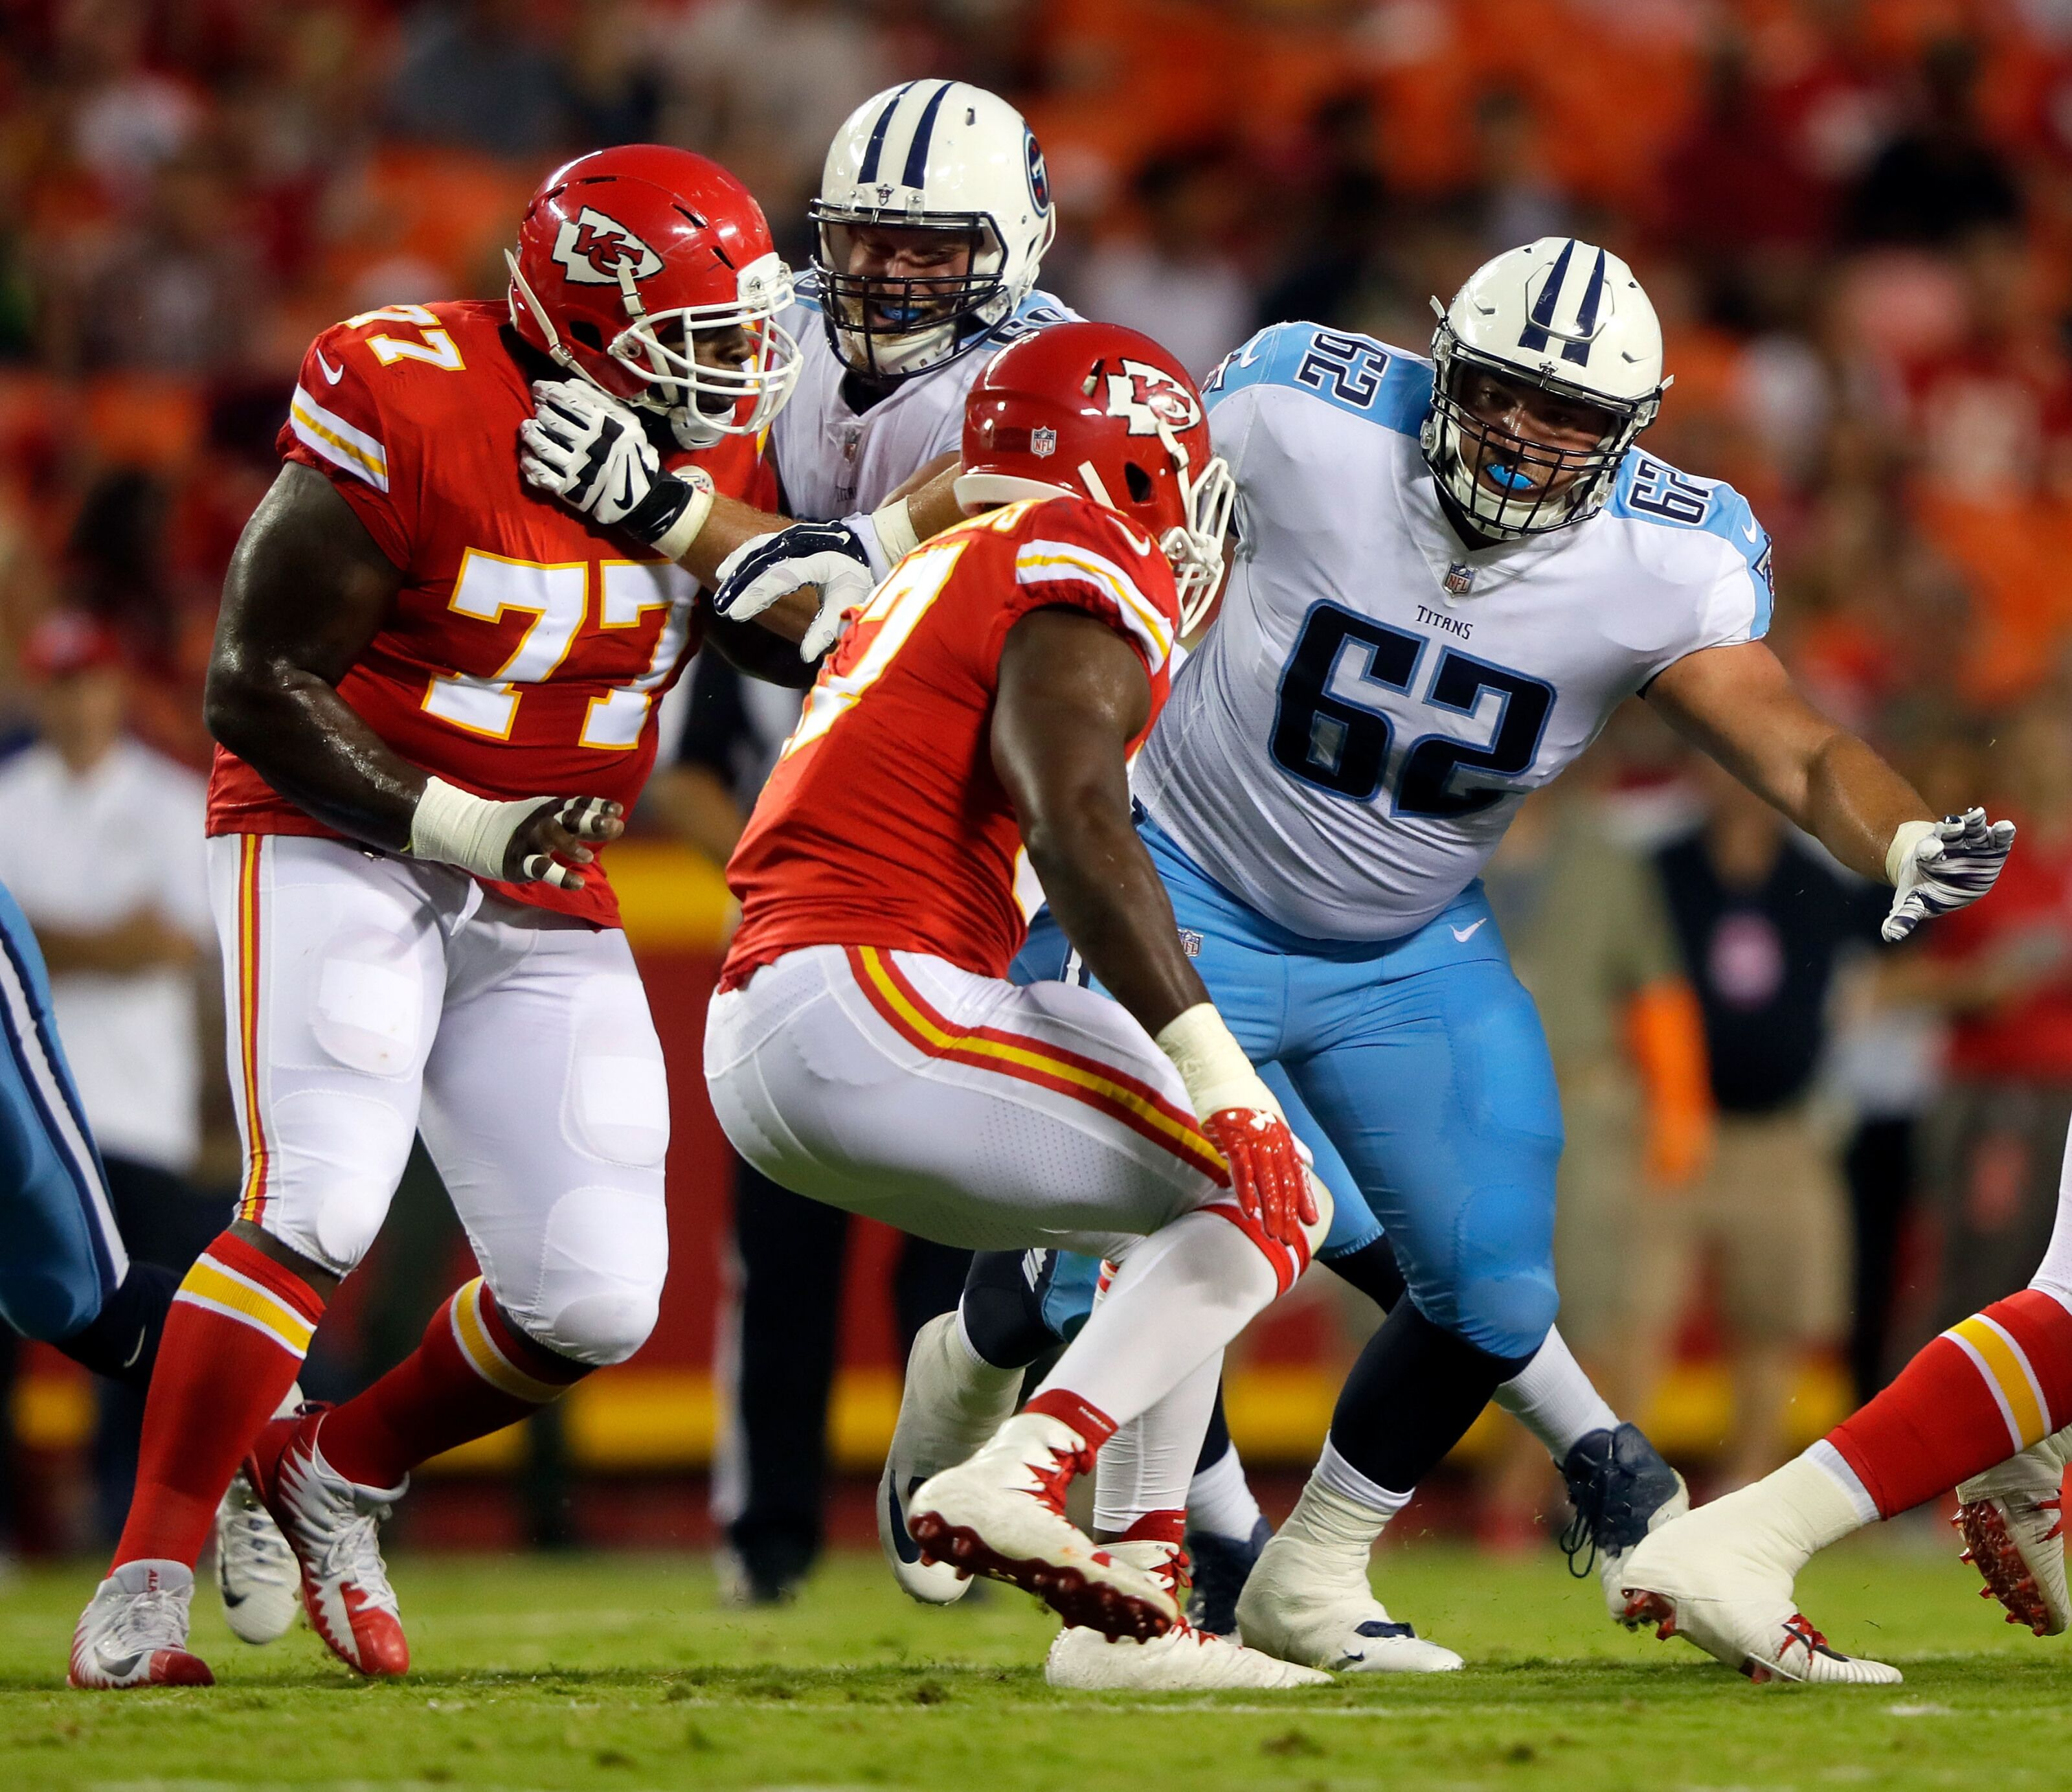 Tennessee Titans have another late round hit in Corey Levin